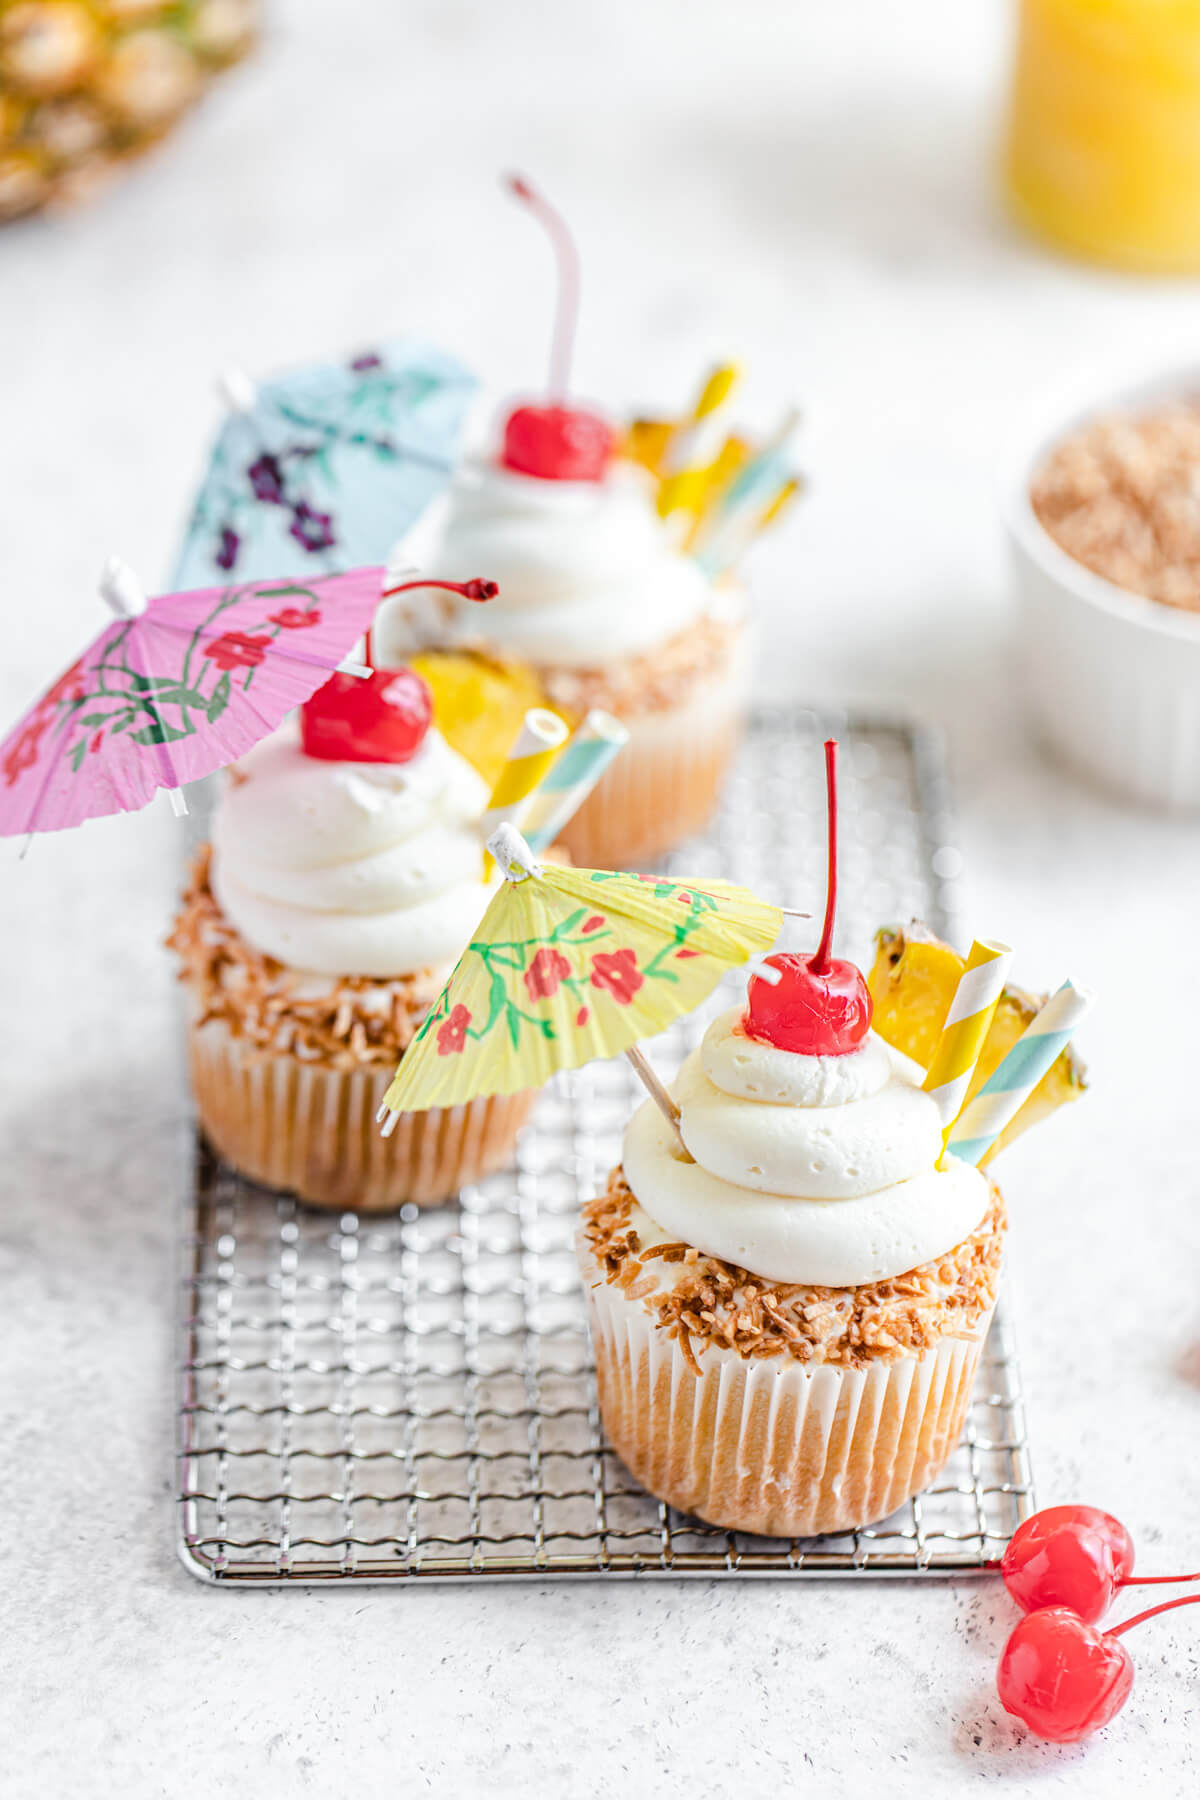 three cupcakes on a safety grater